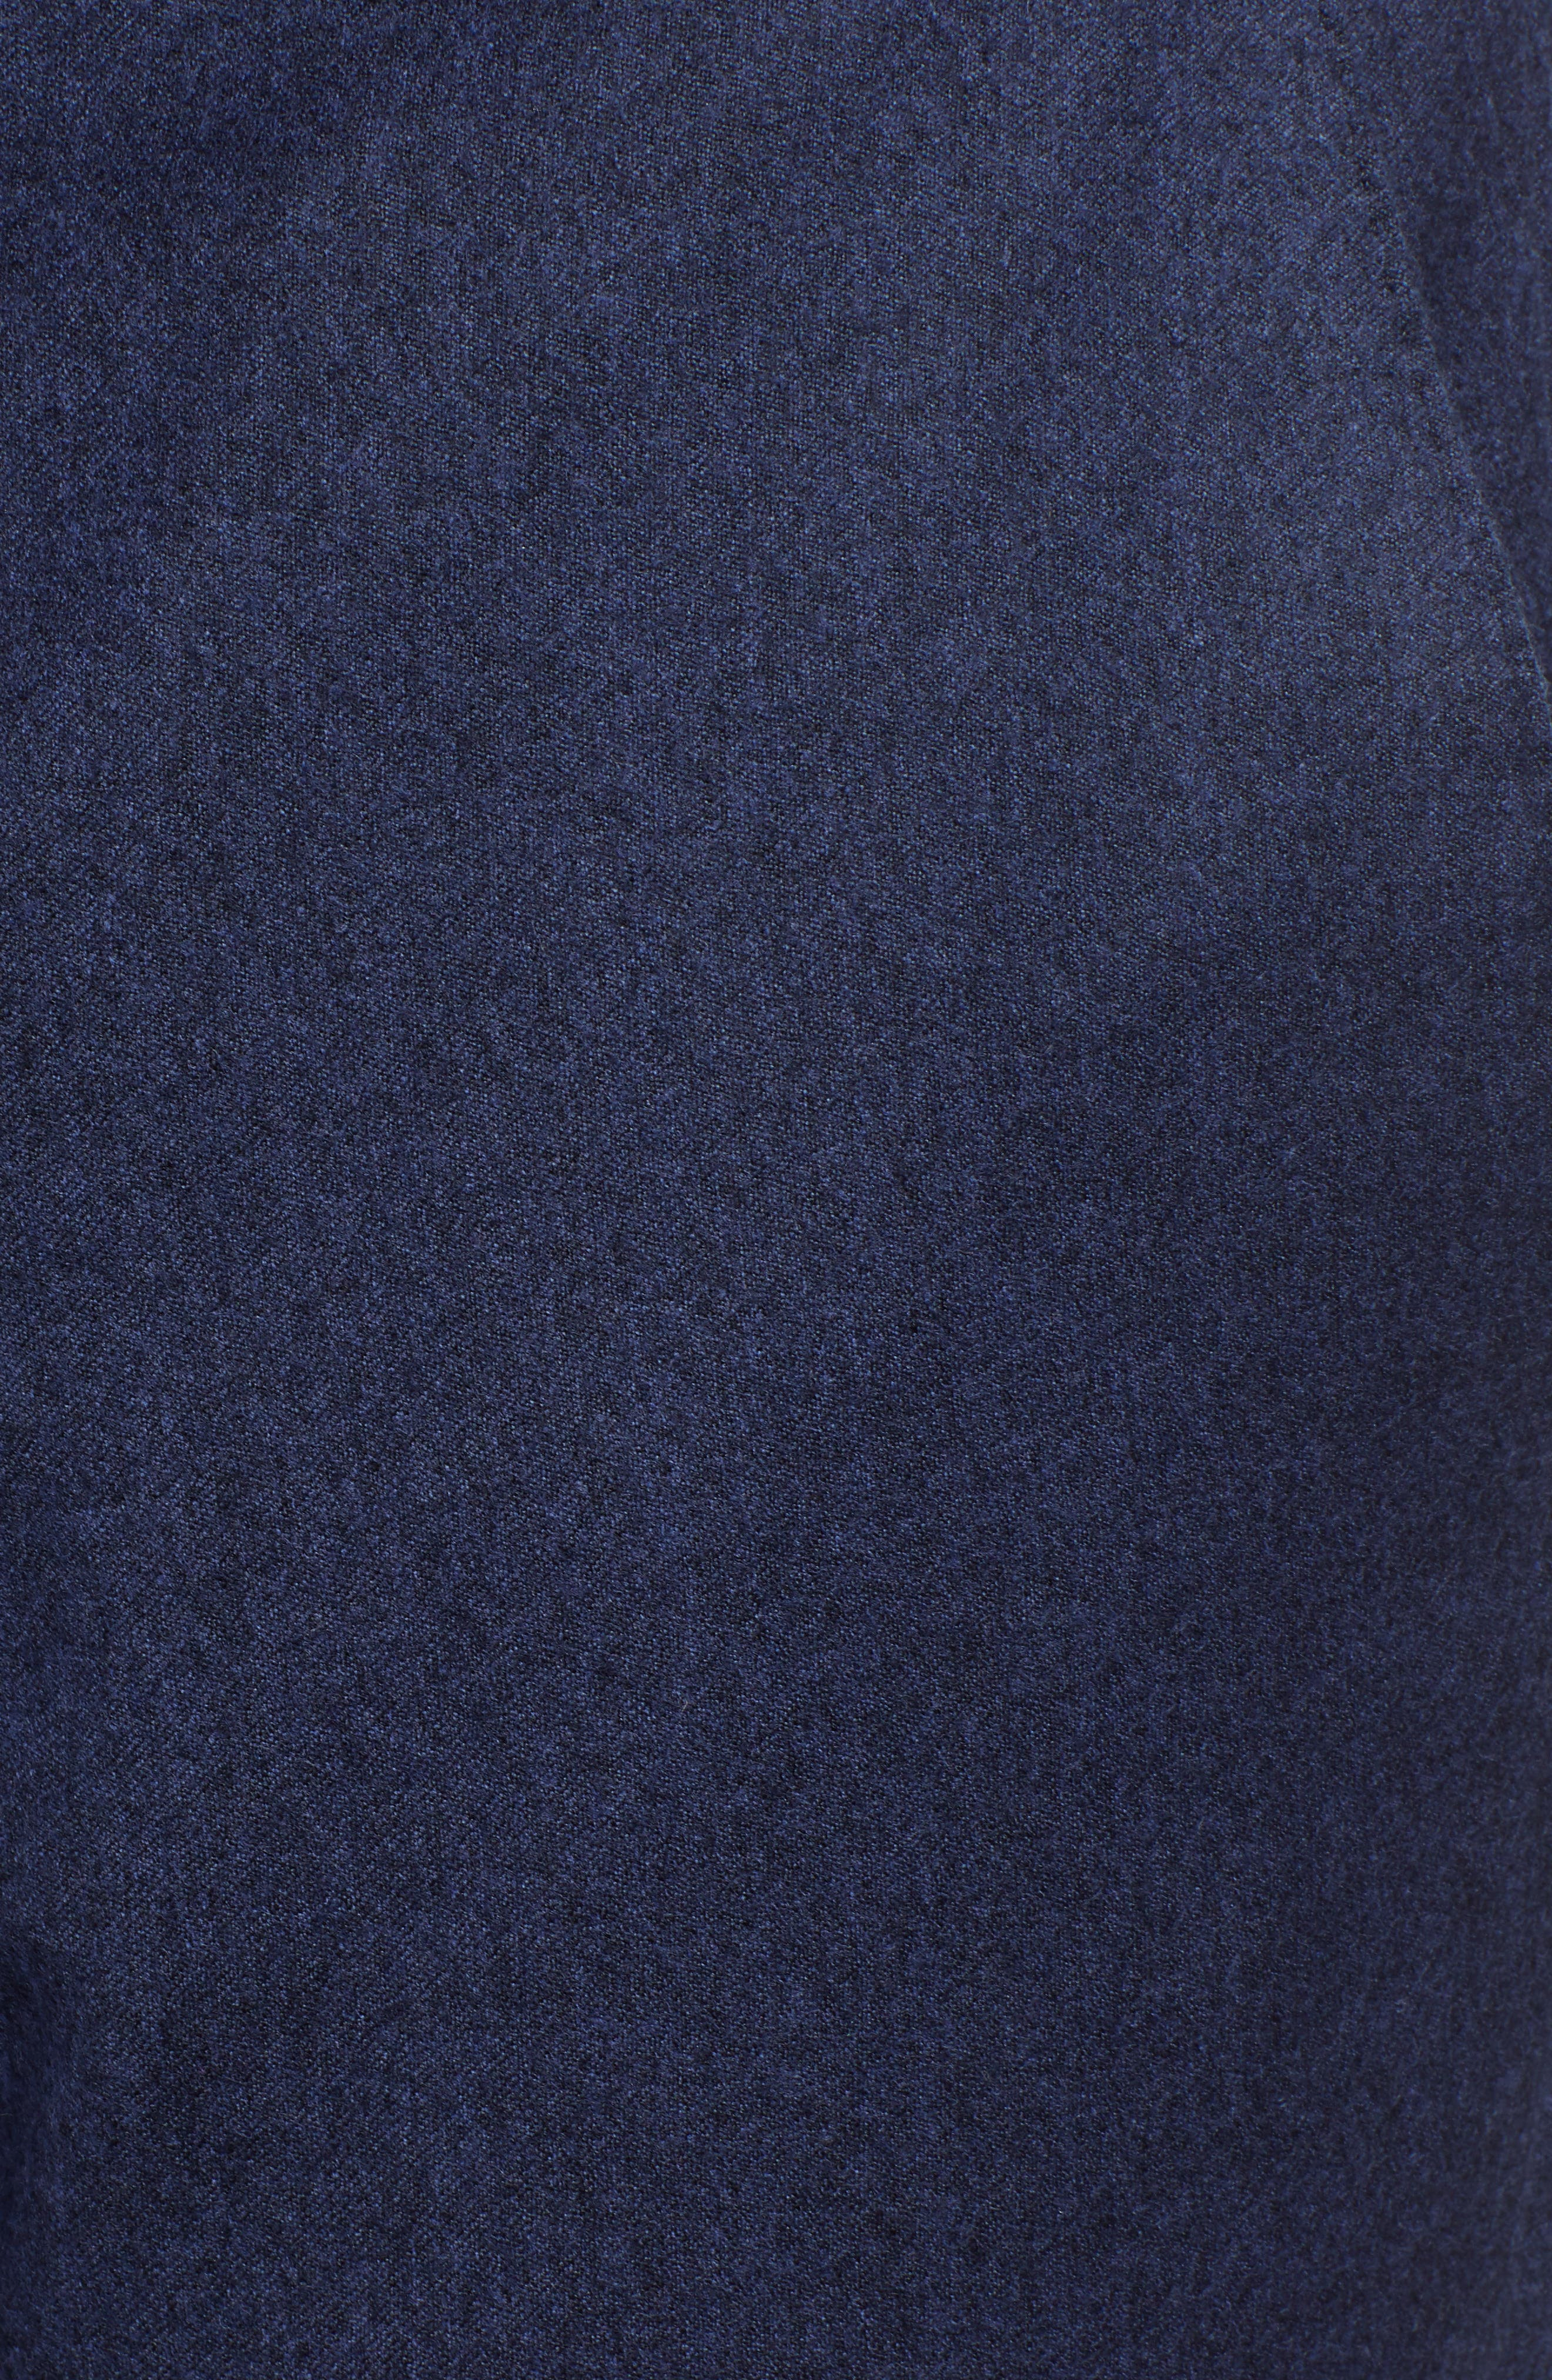 Gains Flat Front Solid Wool Trousers,                             Alternate thumbnail 5, color,                             DARK BLUE